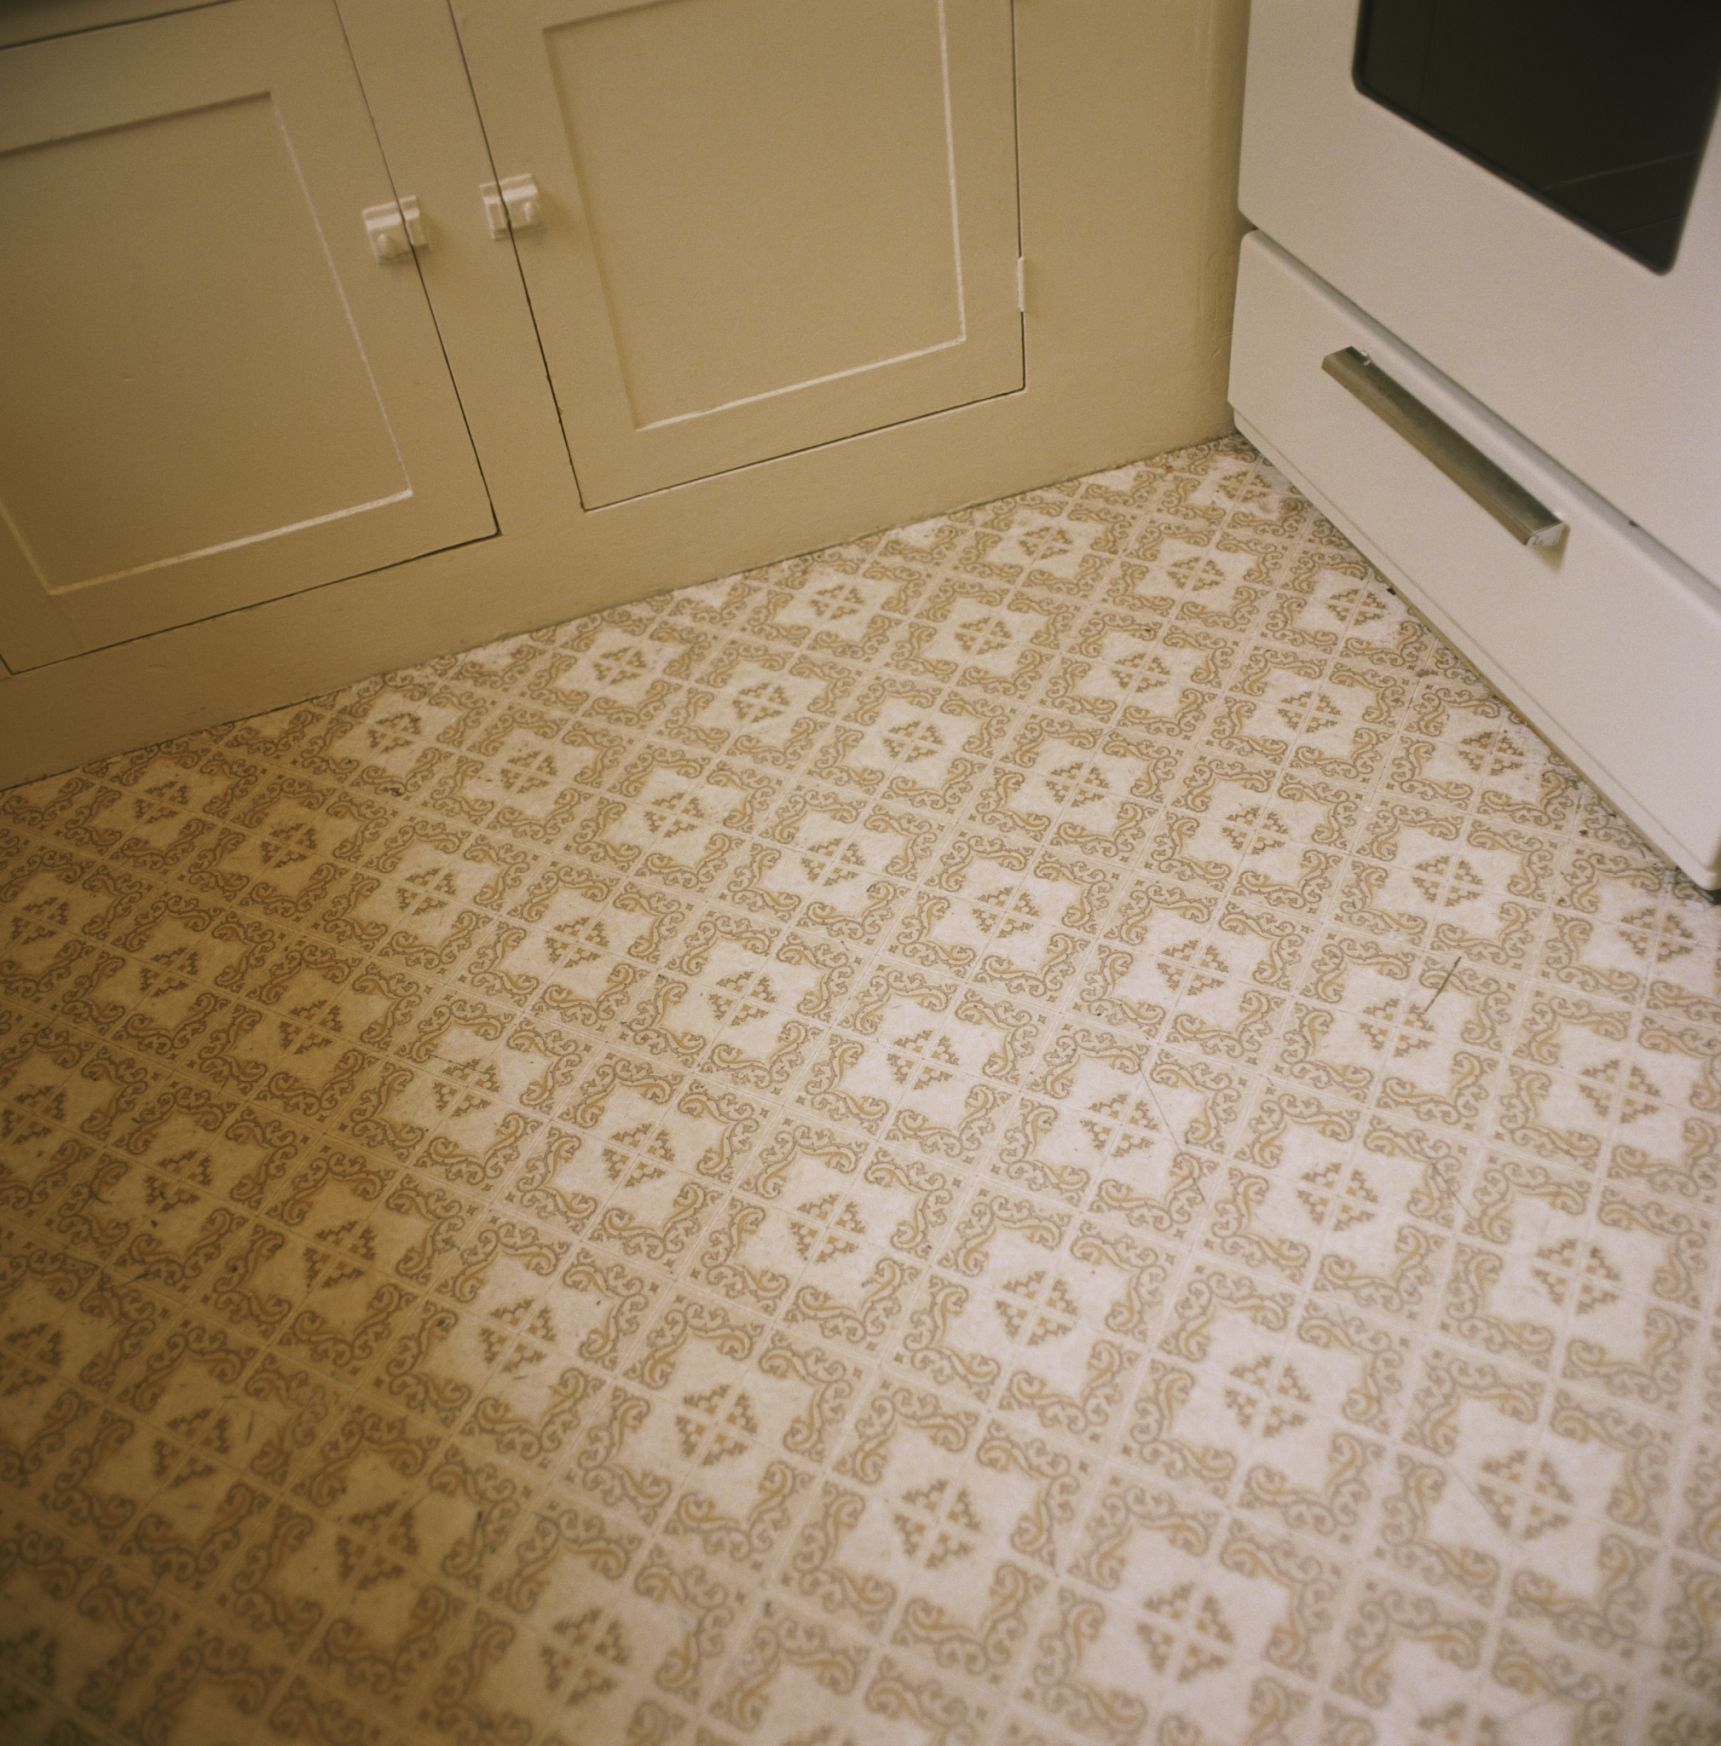 Instructions for cleaning linoleum flooring heres a gallery of linoleum flooring images dailygadgetfo Choice Image